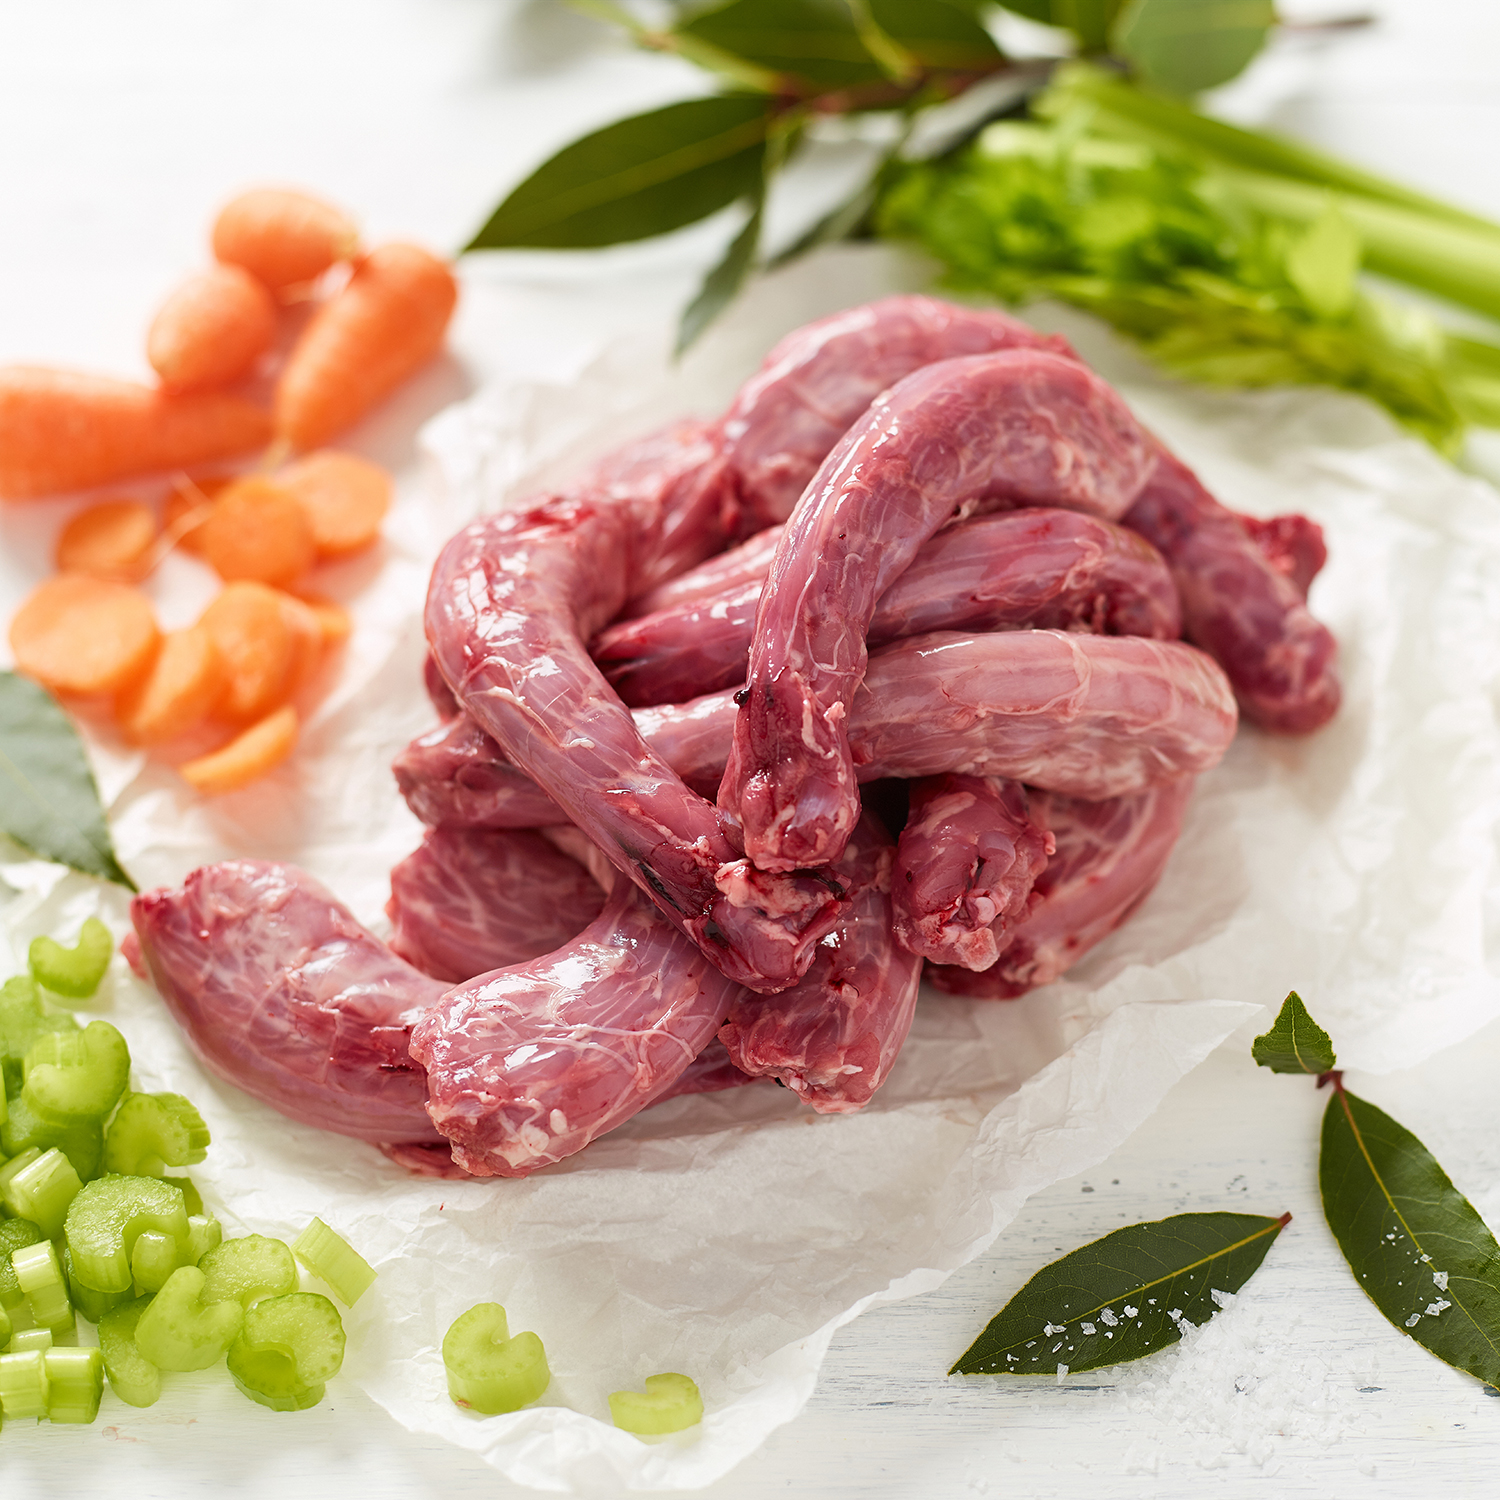 Free Range Chicken Necks with celery, carrots, bay leaves and rock salt